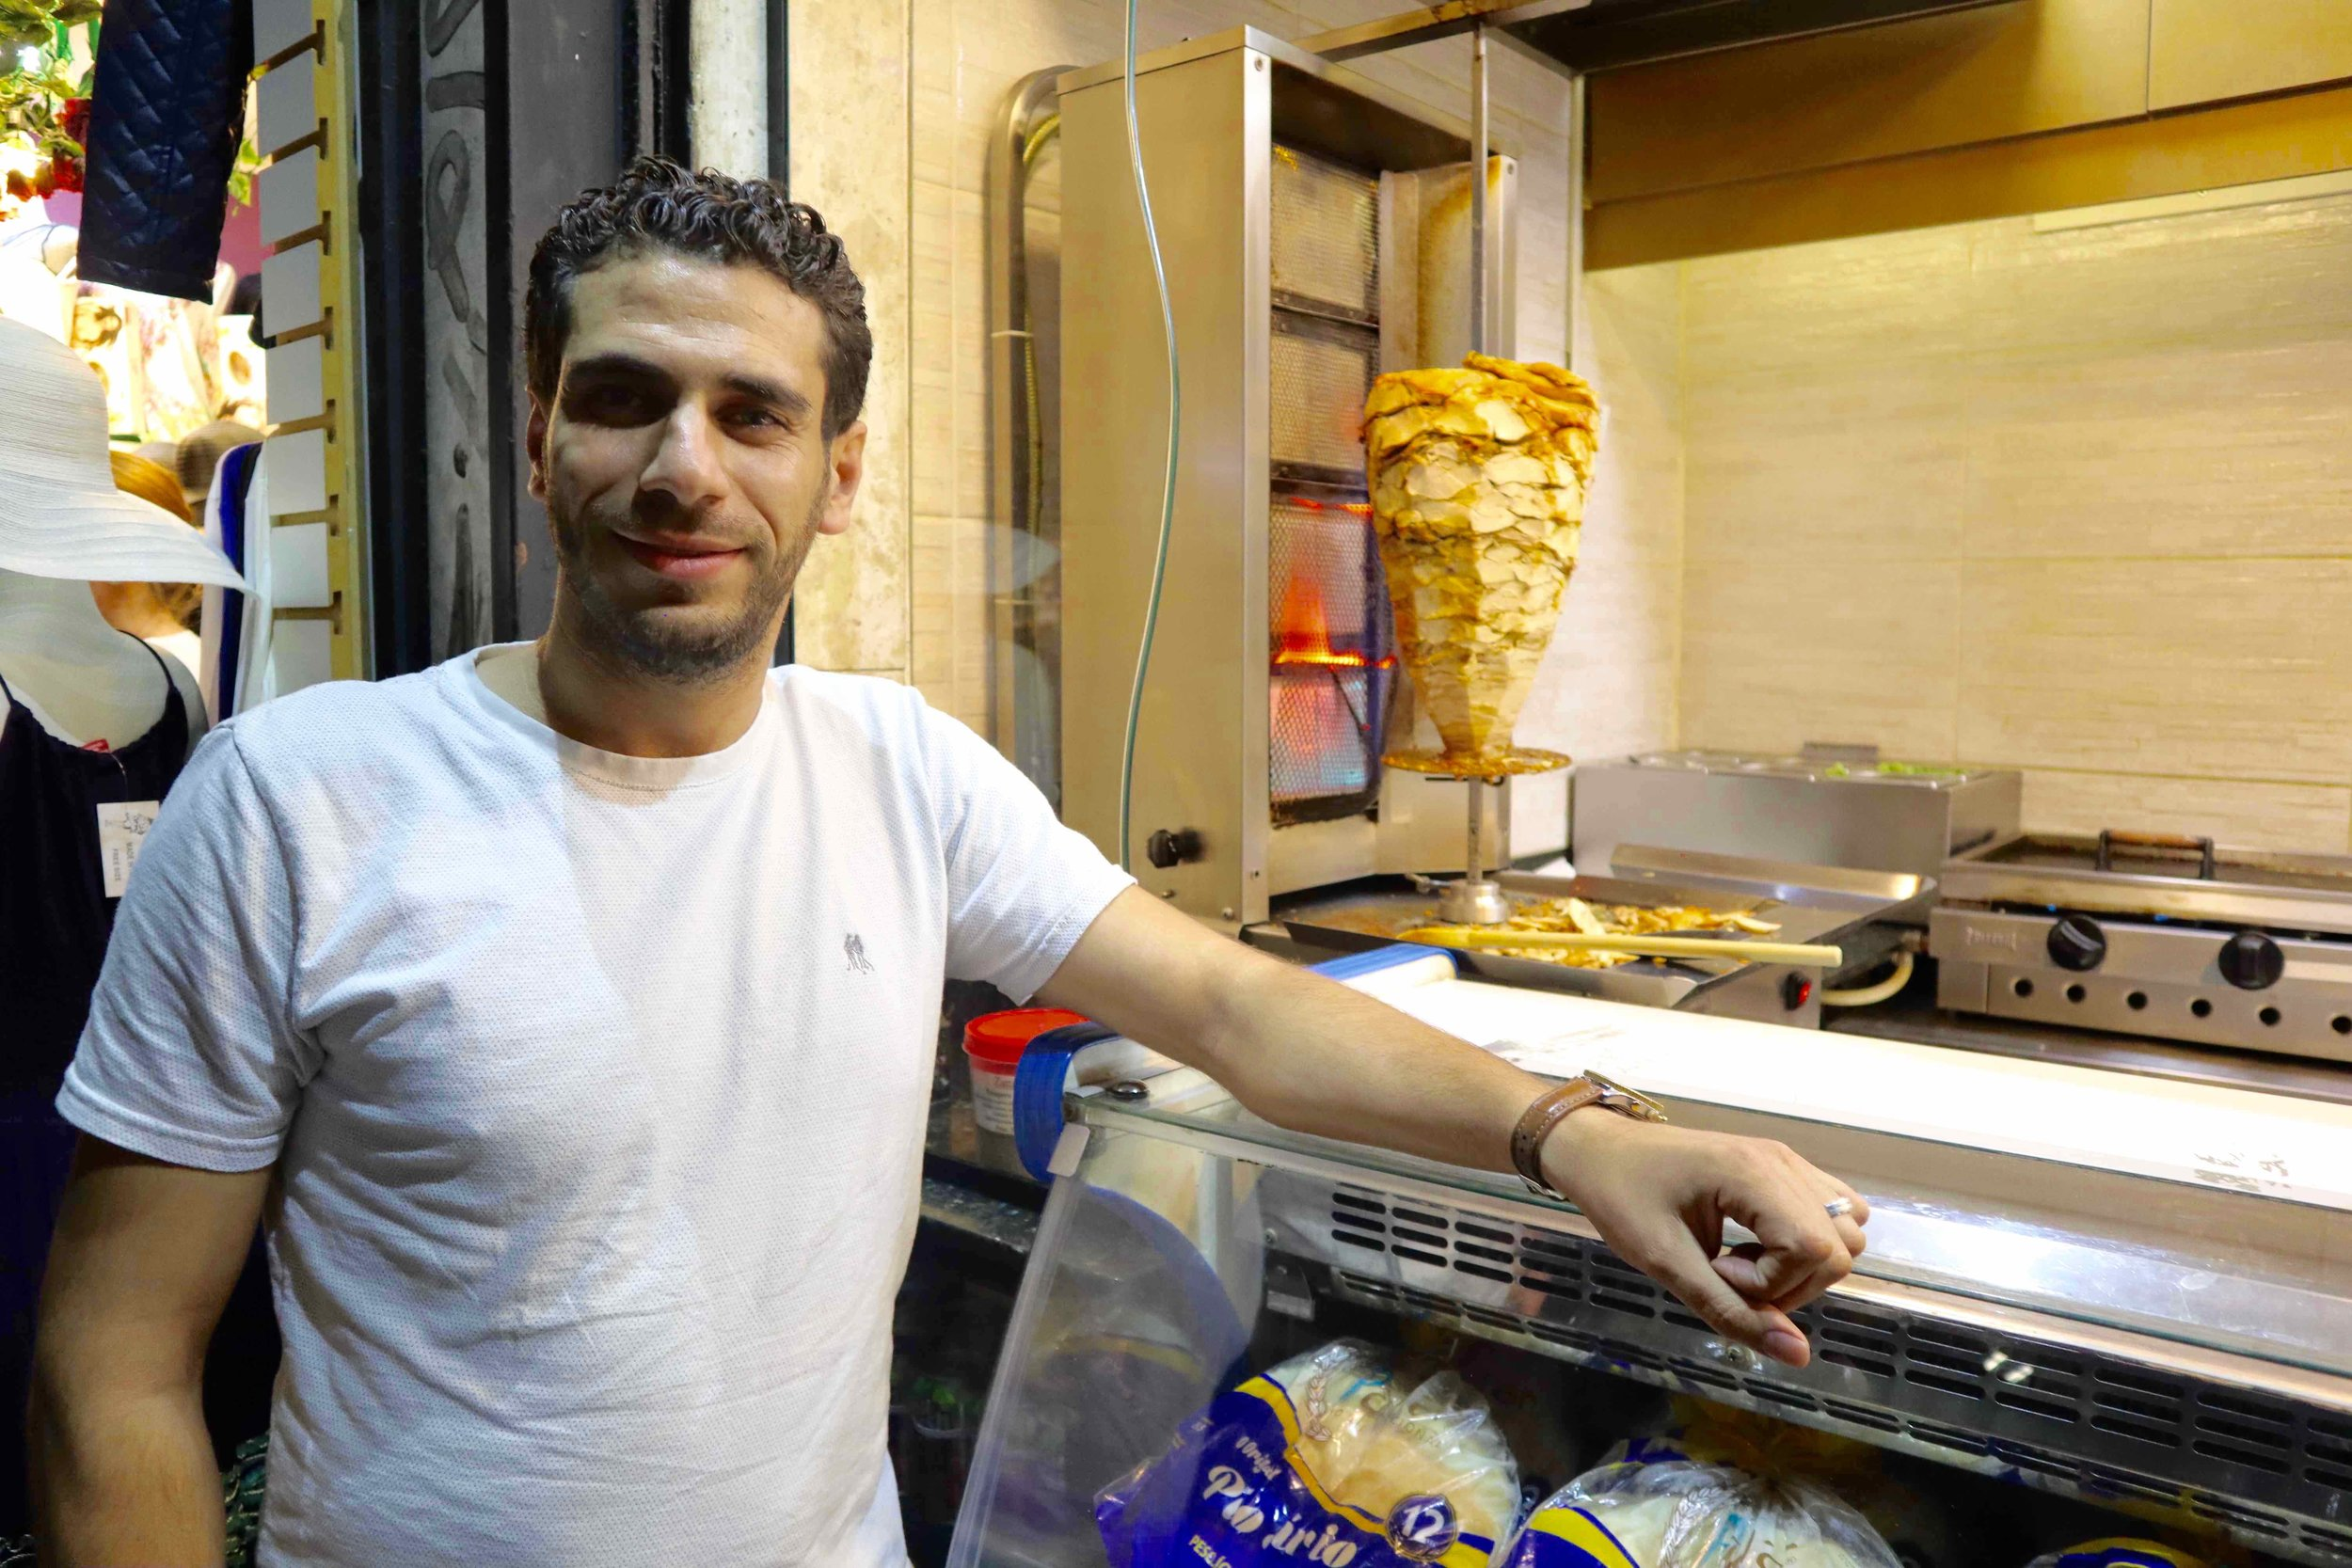 Ahmad came to Brazil through the country's special Syria humanitarian visa program. He's now settled in São Paulo with his family and has a string of successful restaurants, including this popular eatery selling delicious Shawarma and Syrian deserts.